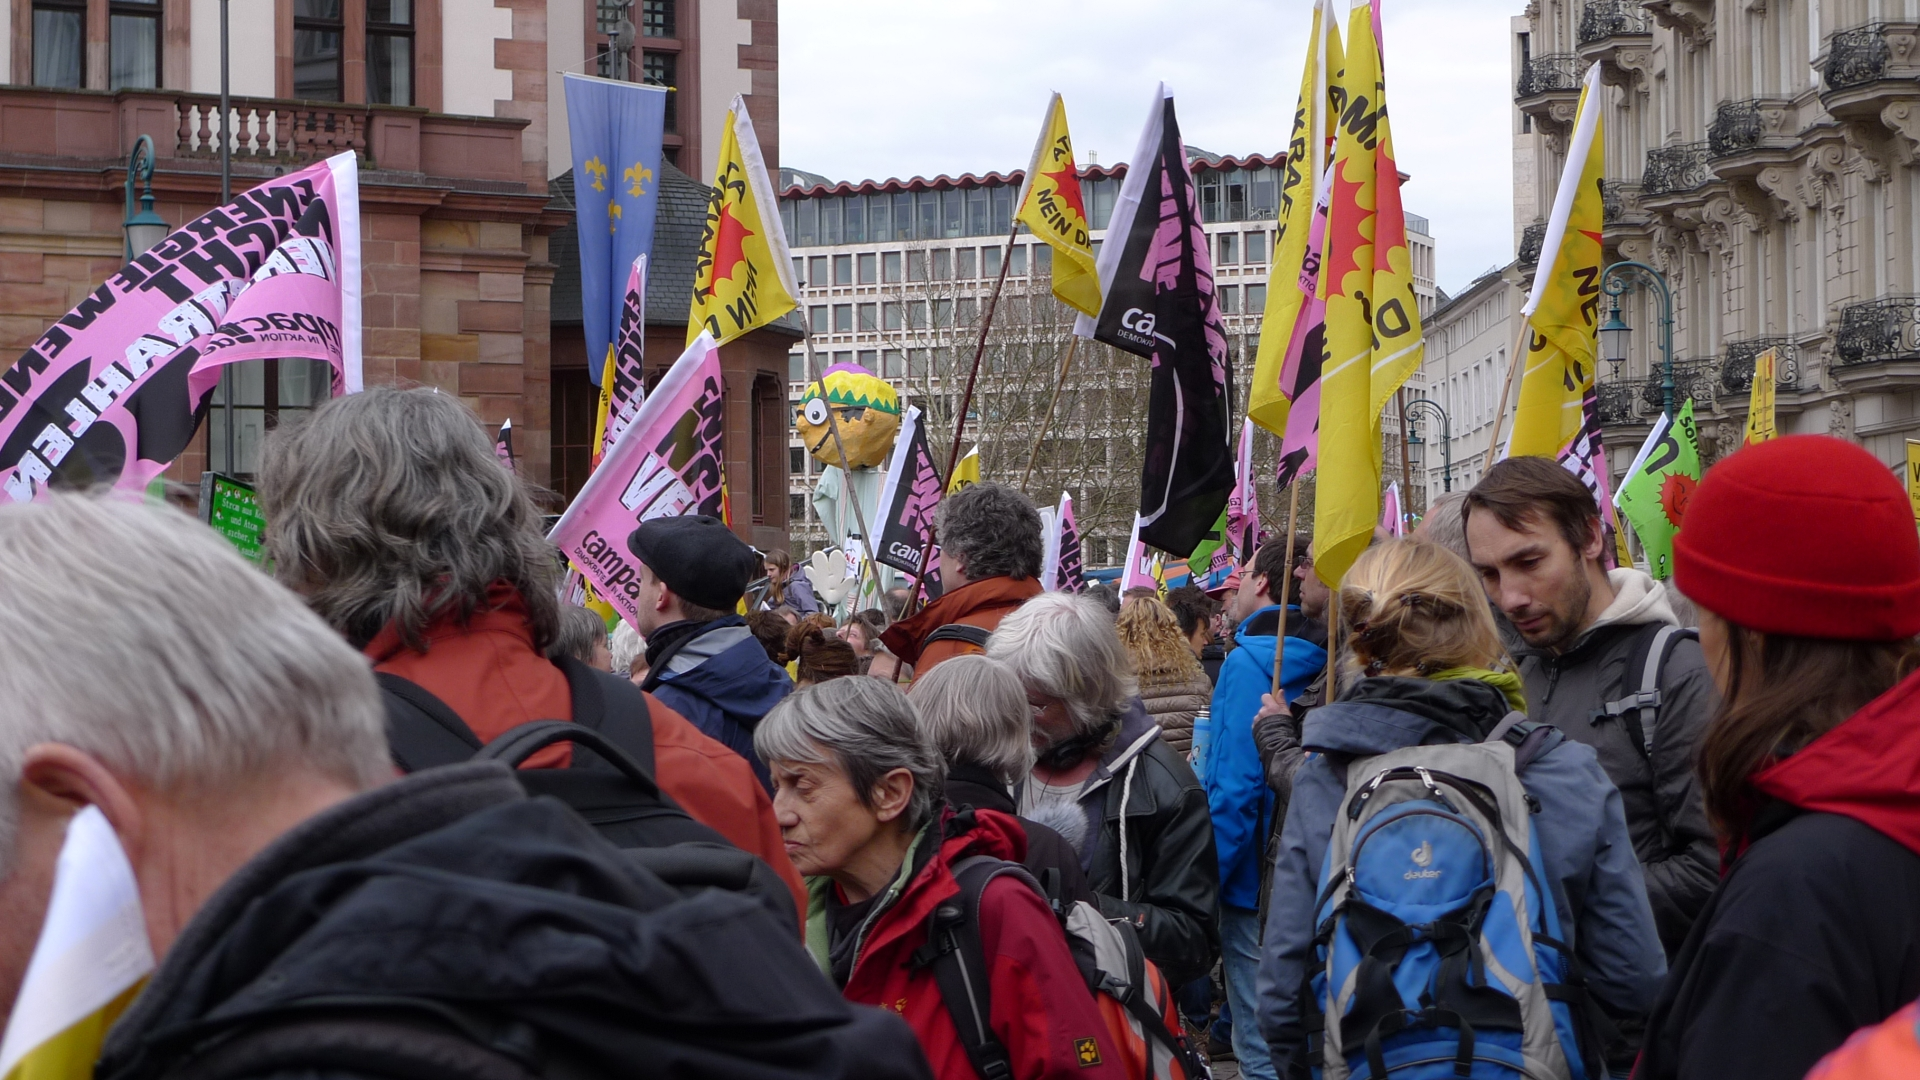 Bilder der Anti-AKW Demo in Wiesbaden